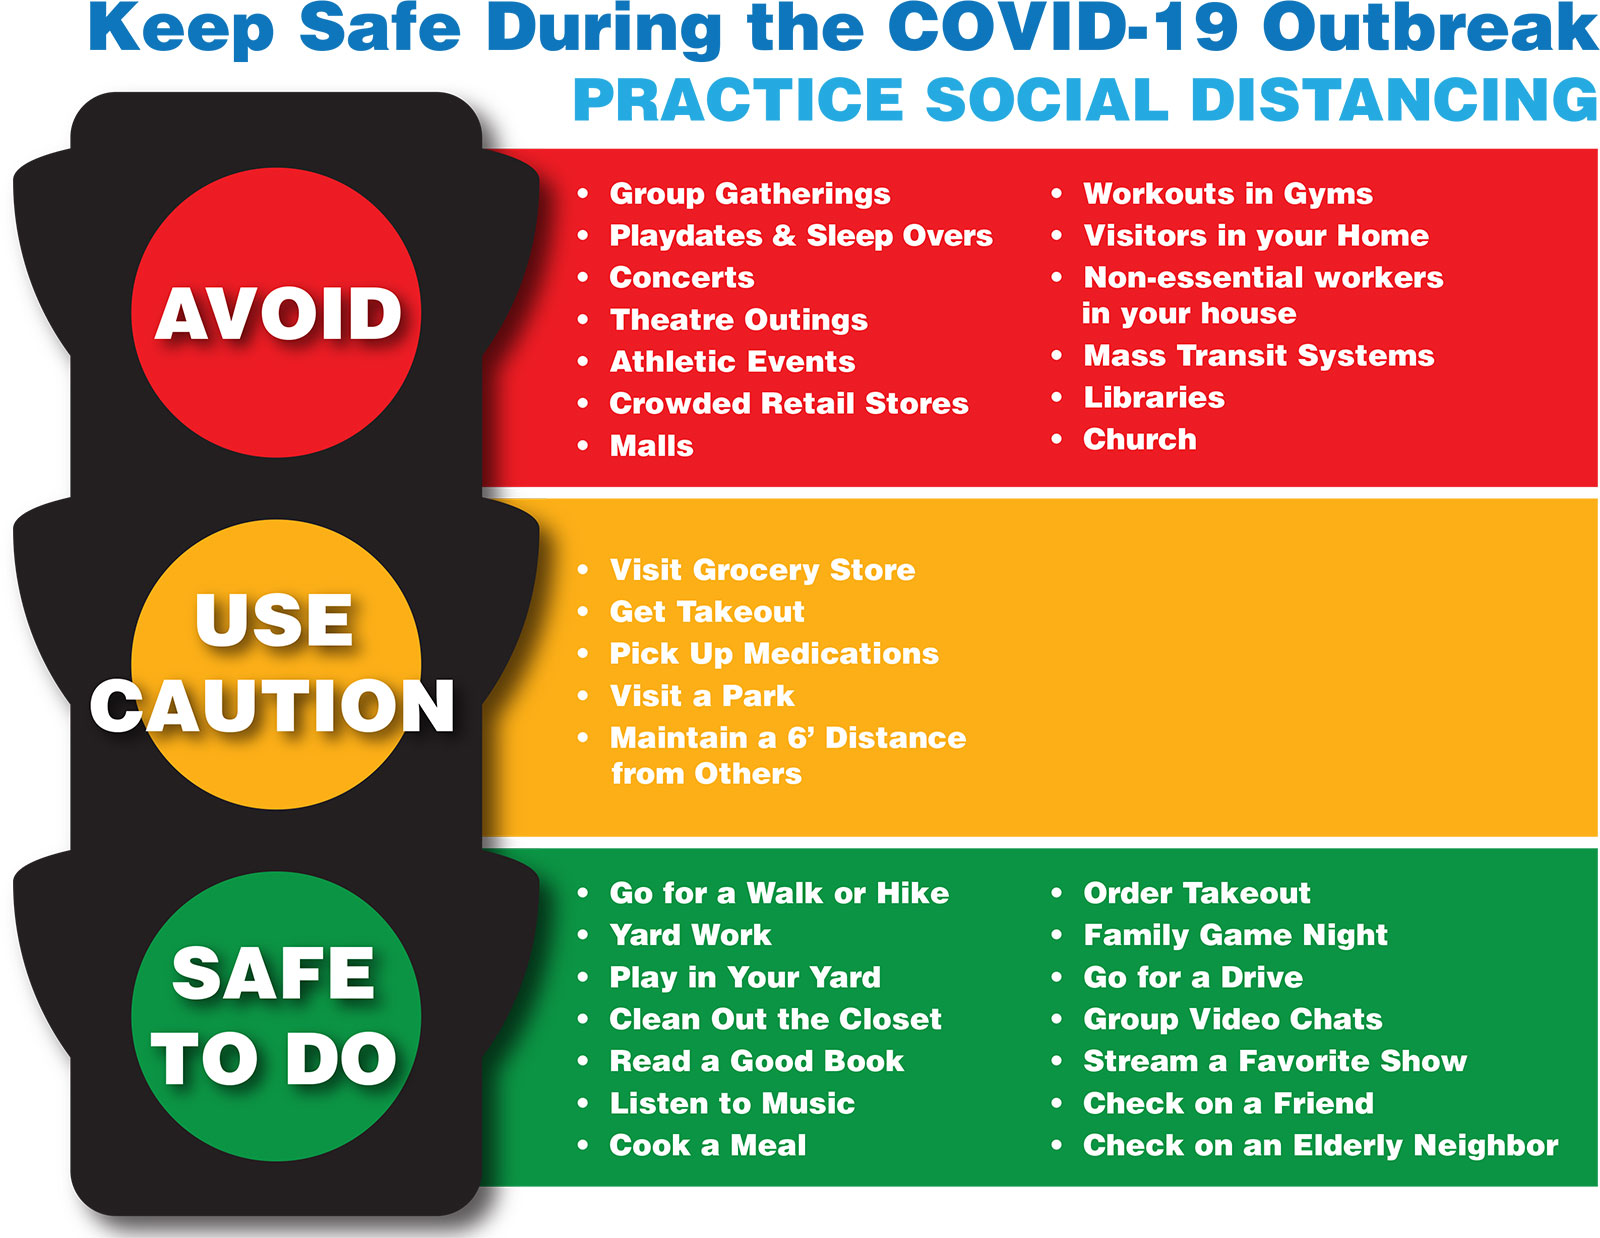 COVID-19-Safety-Graphic-rev